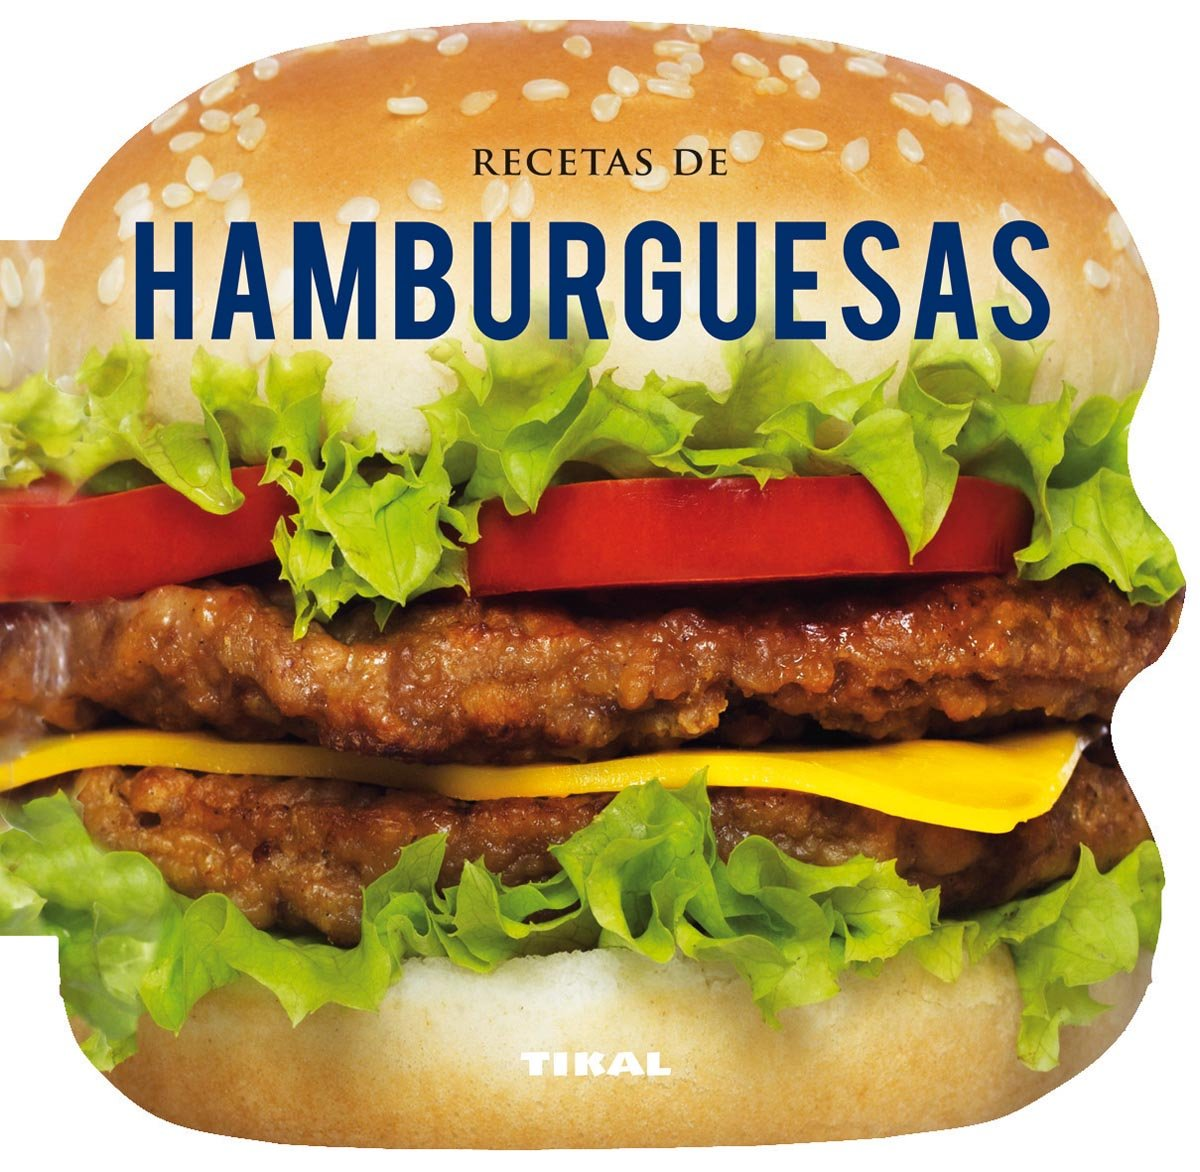 Recetas de hamburguesas (Cocina con forma) (Spanish Edition): Inc. Susaeta Publishing: 9788499282541: Amazon.com: Books